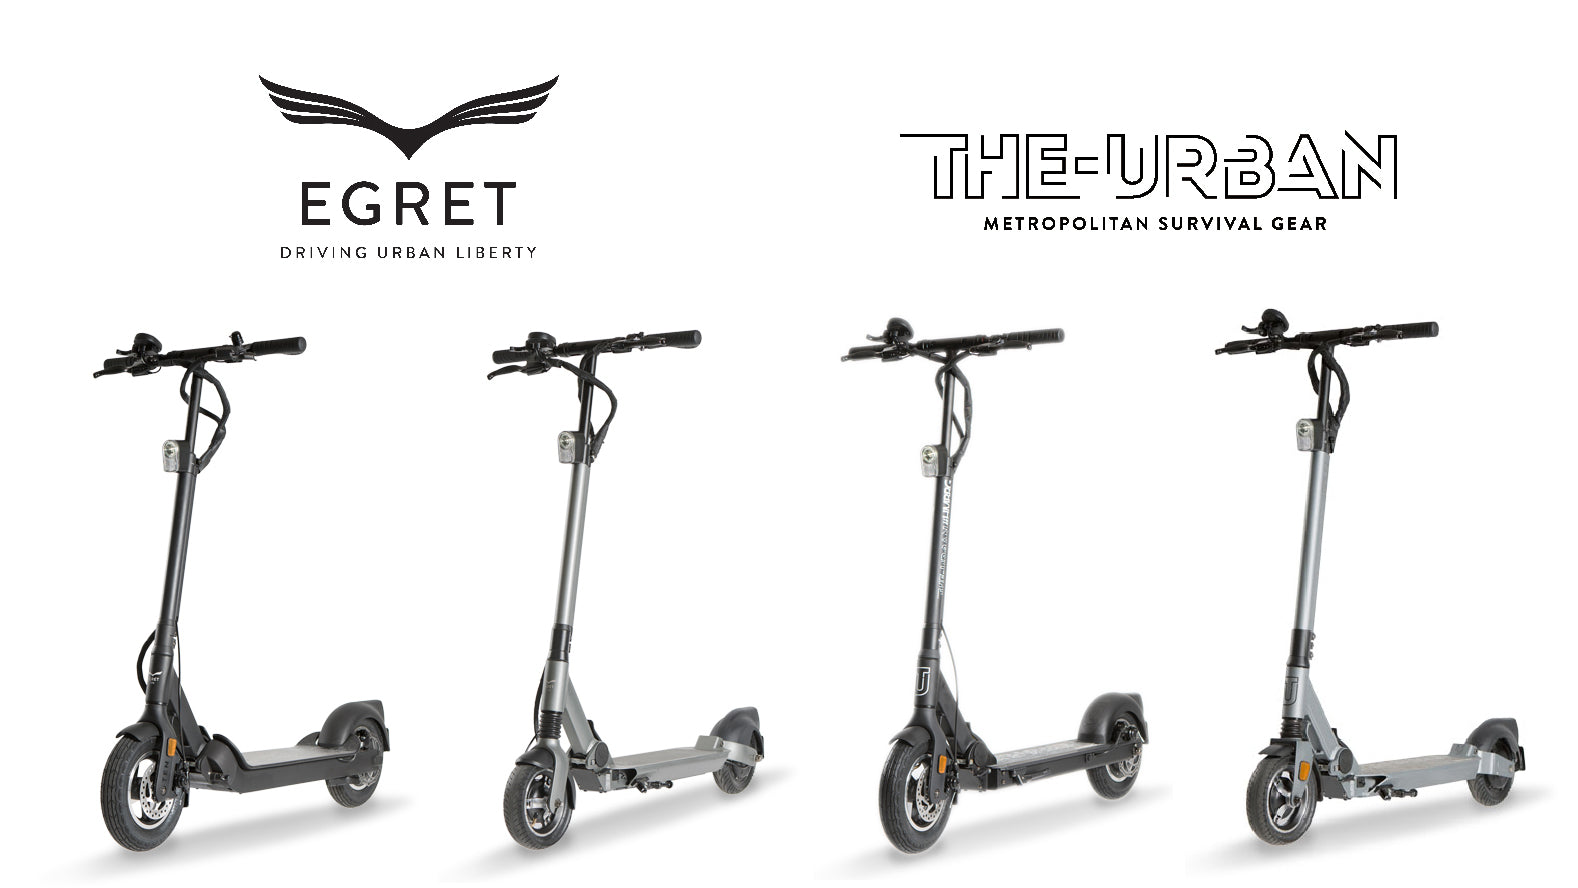 2 Egret Scooter und 2 THE-URBAN Scooter nebeneinander